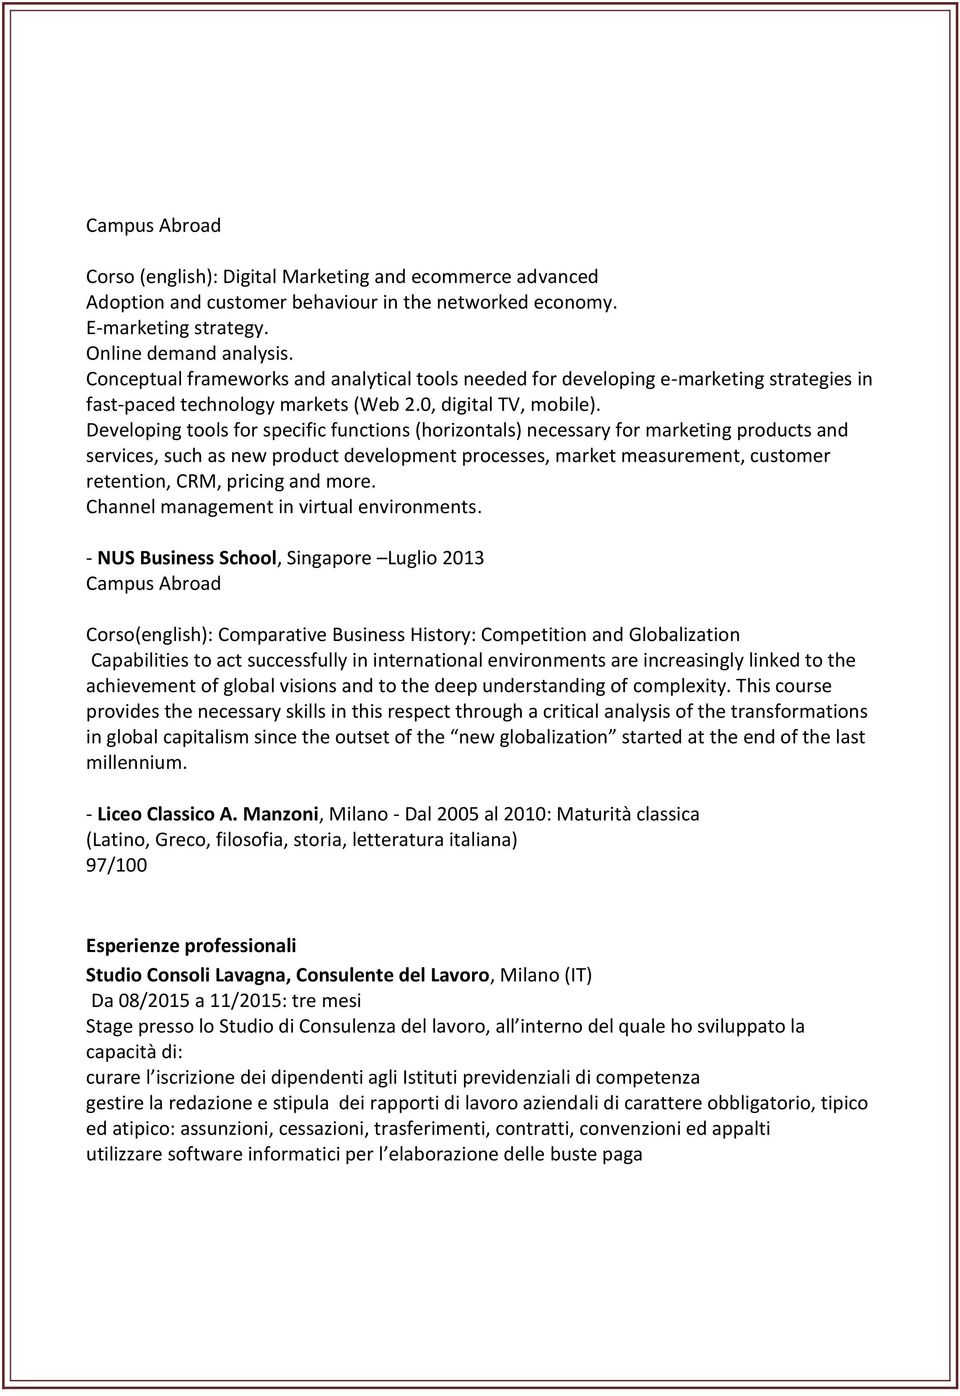 Developing tools for specific functions (horizontals) necessary for marketing products and services, such as new product development processes, market measurement, customer retention, CRM, pricing